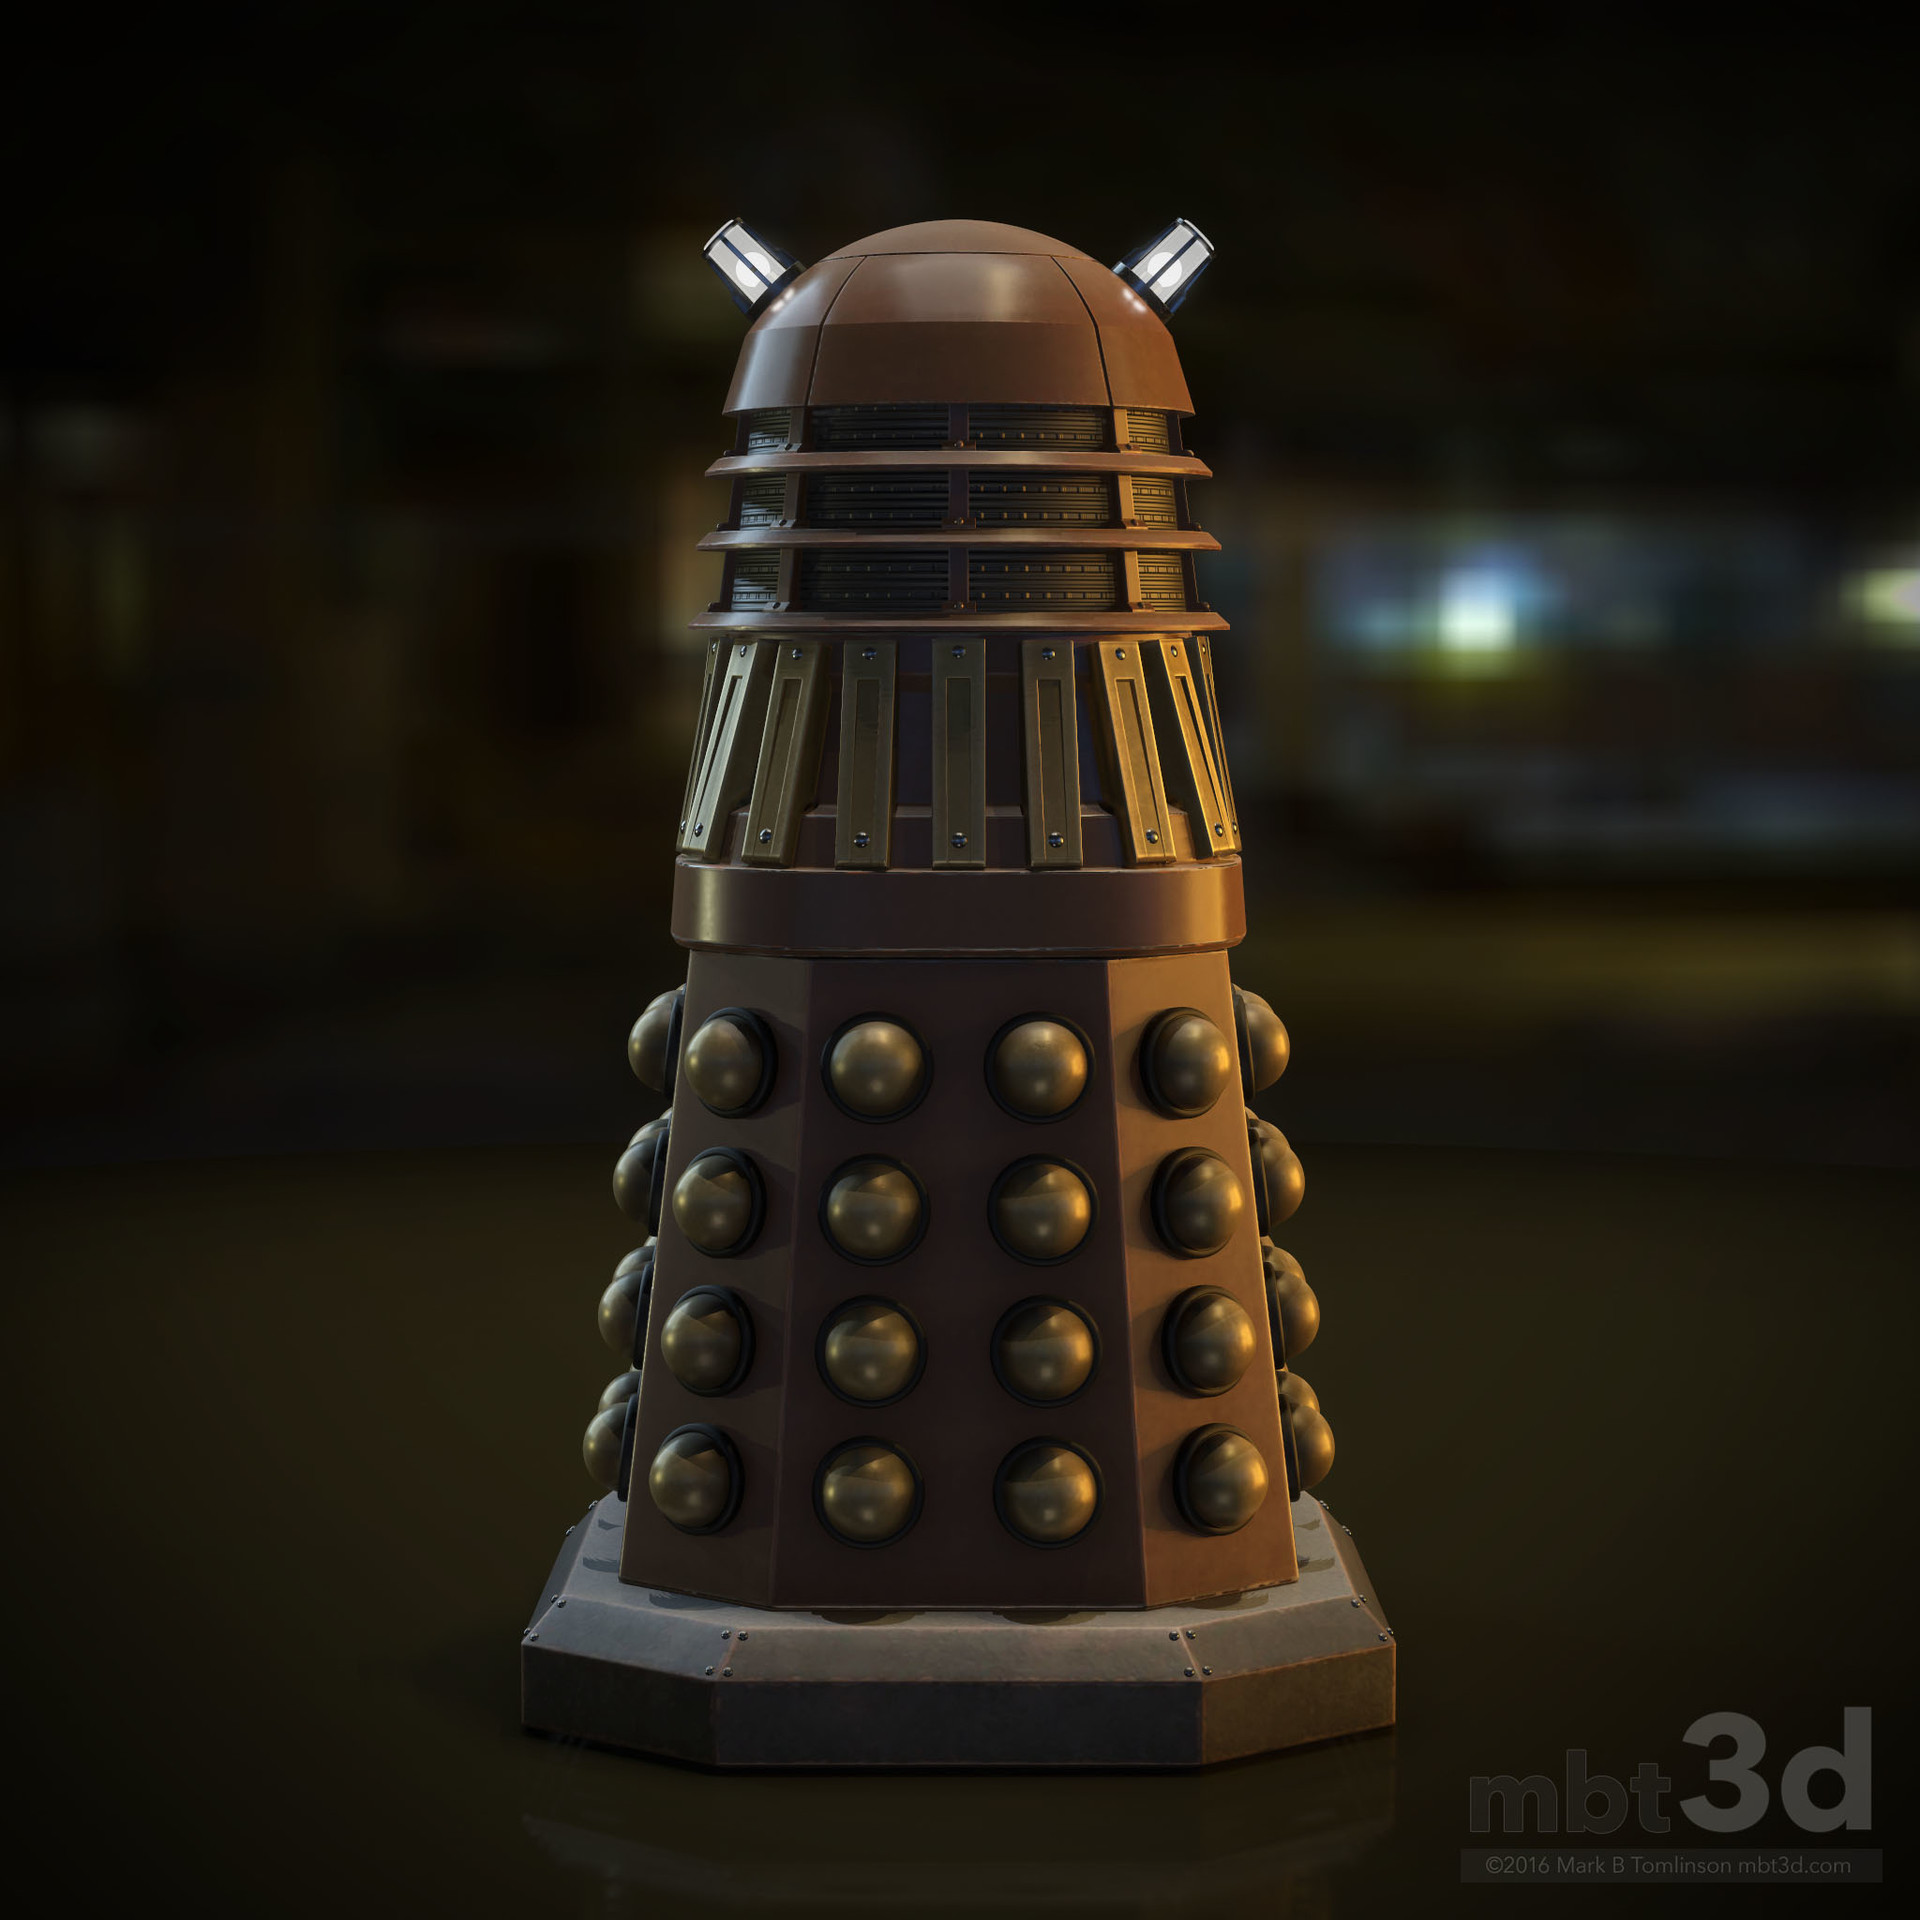 Mark b tomlinson dalek toolbag render final 2k 0002 3